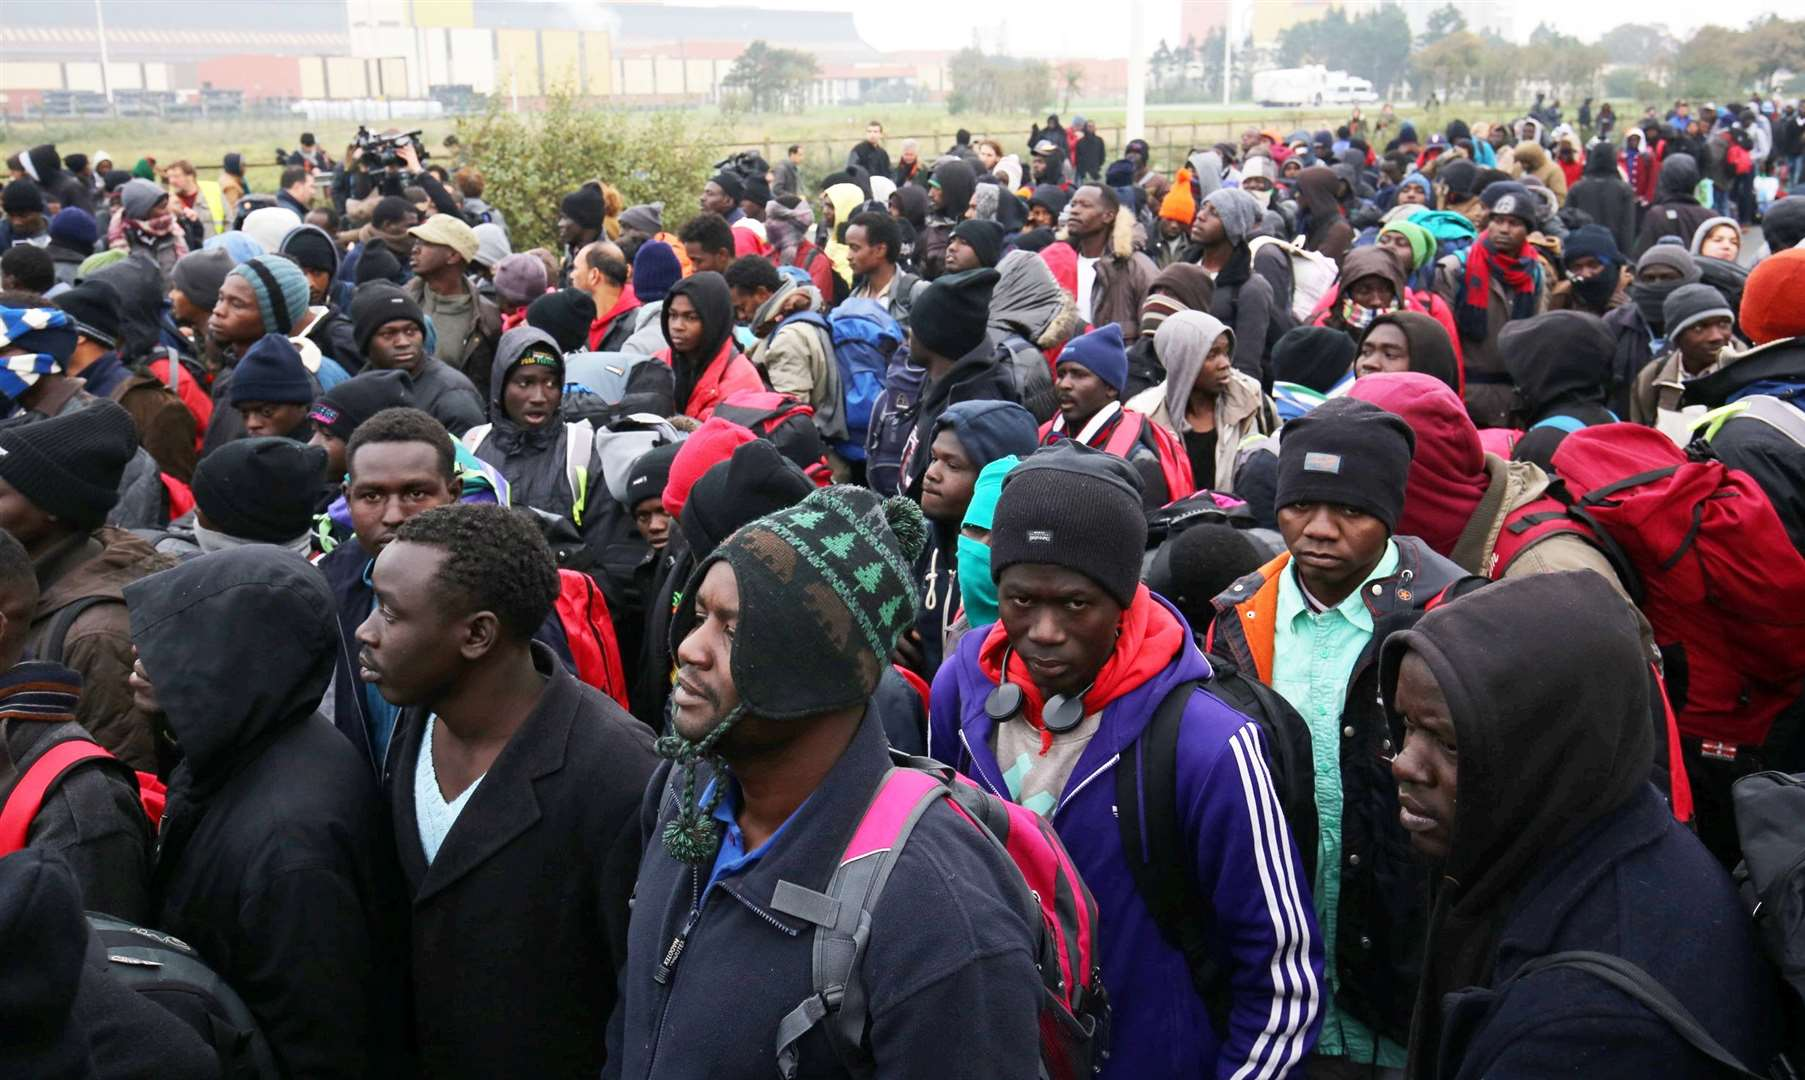 Migrants in Calais at the time of the closure of the Jungle, 2016. Picture copyright SWNS (South West News Service).